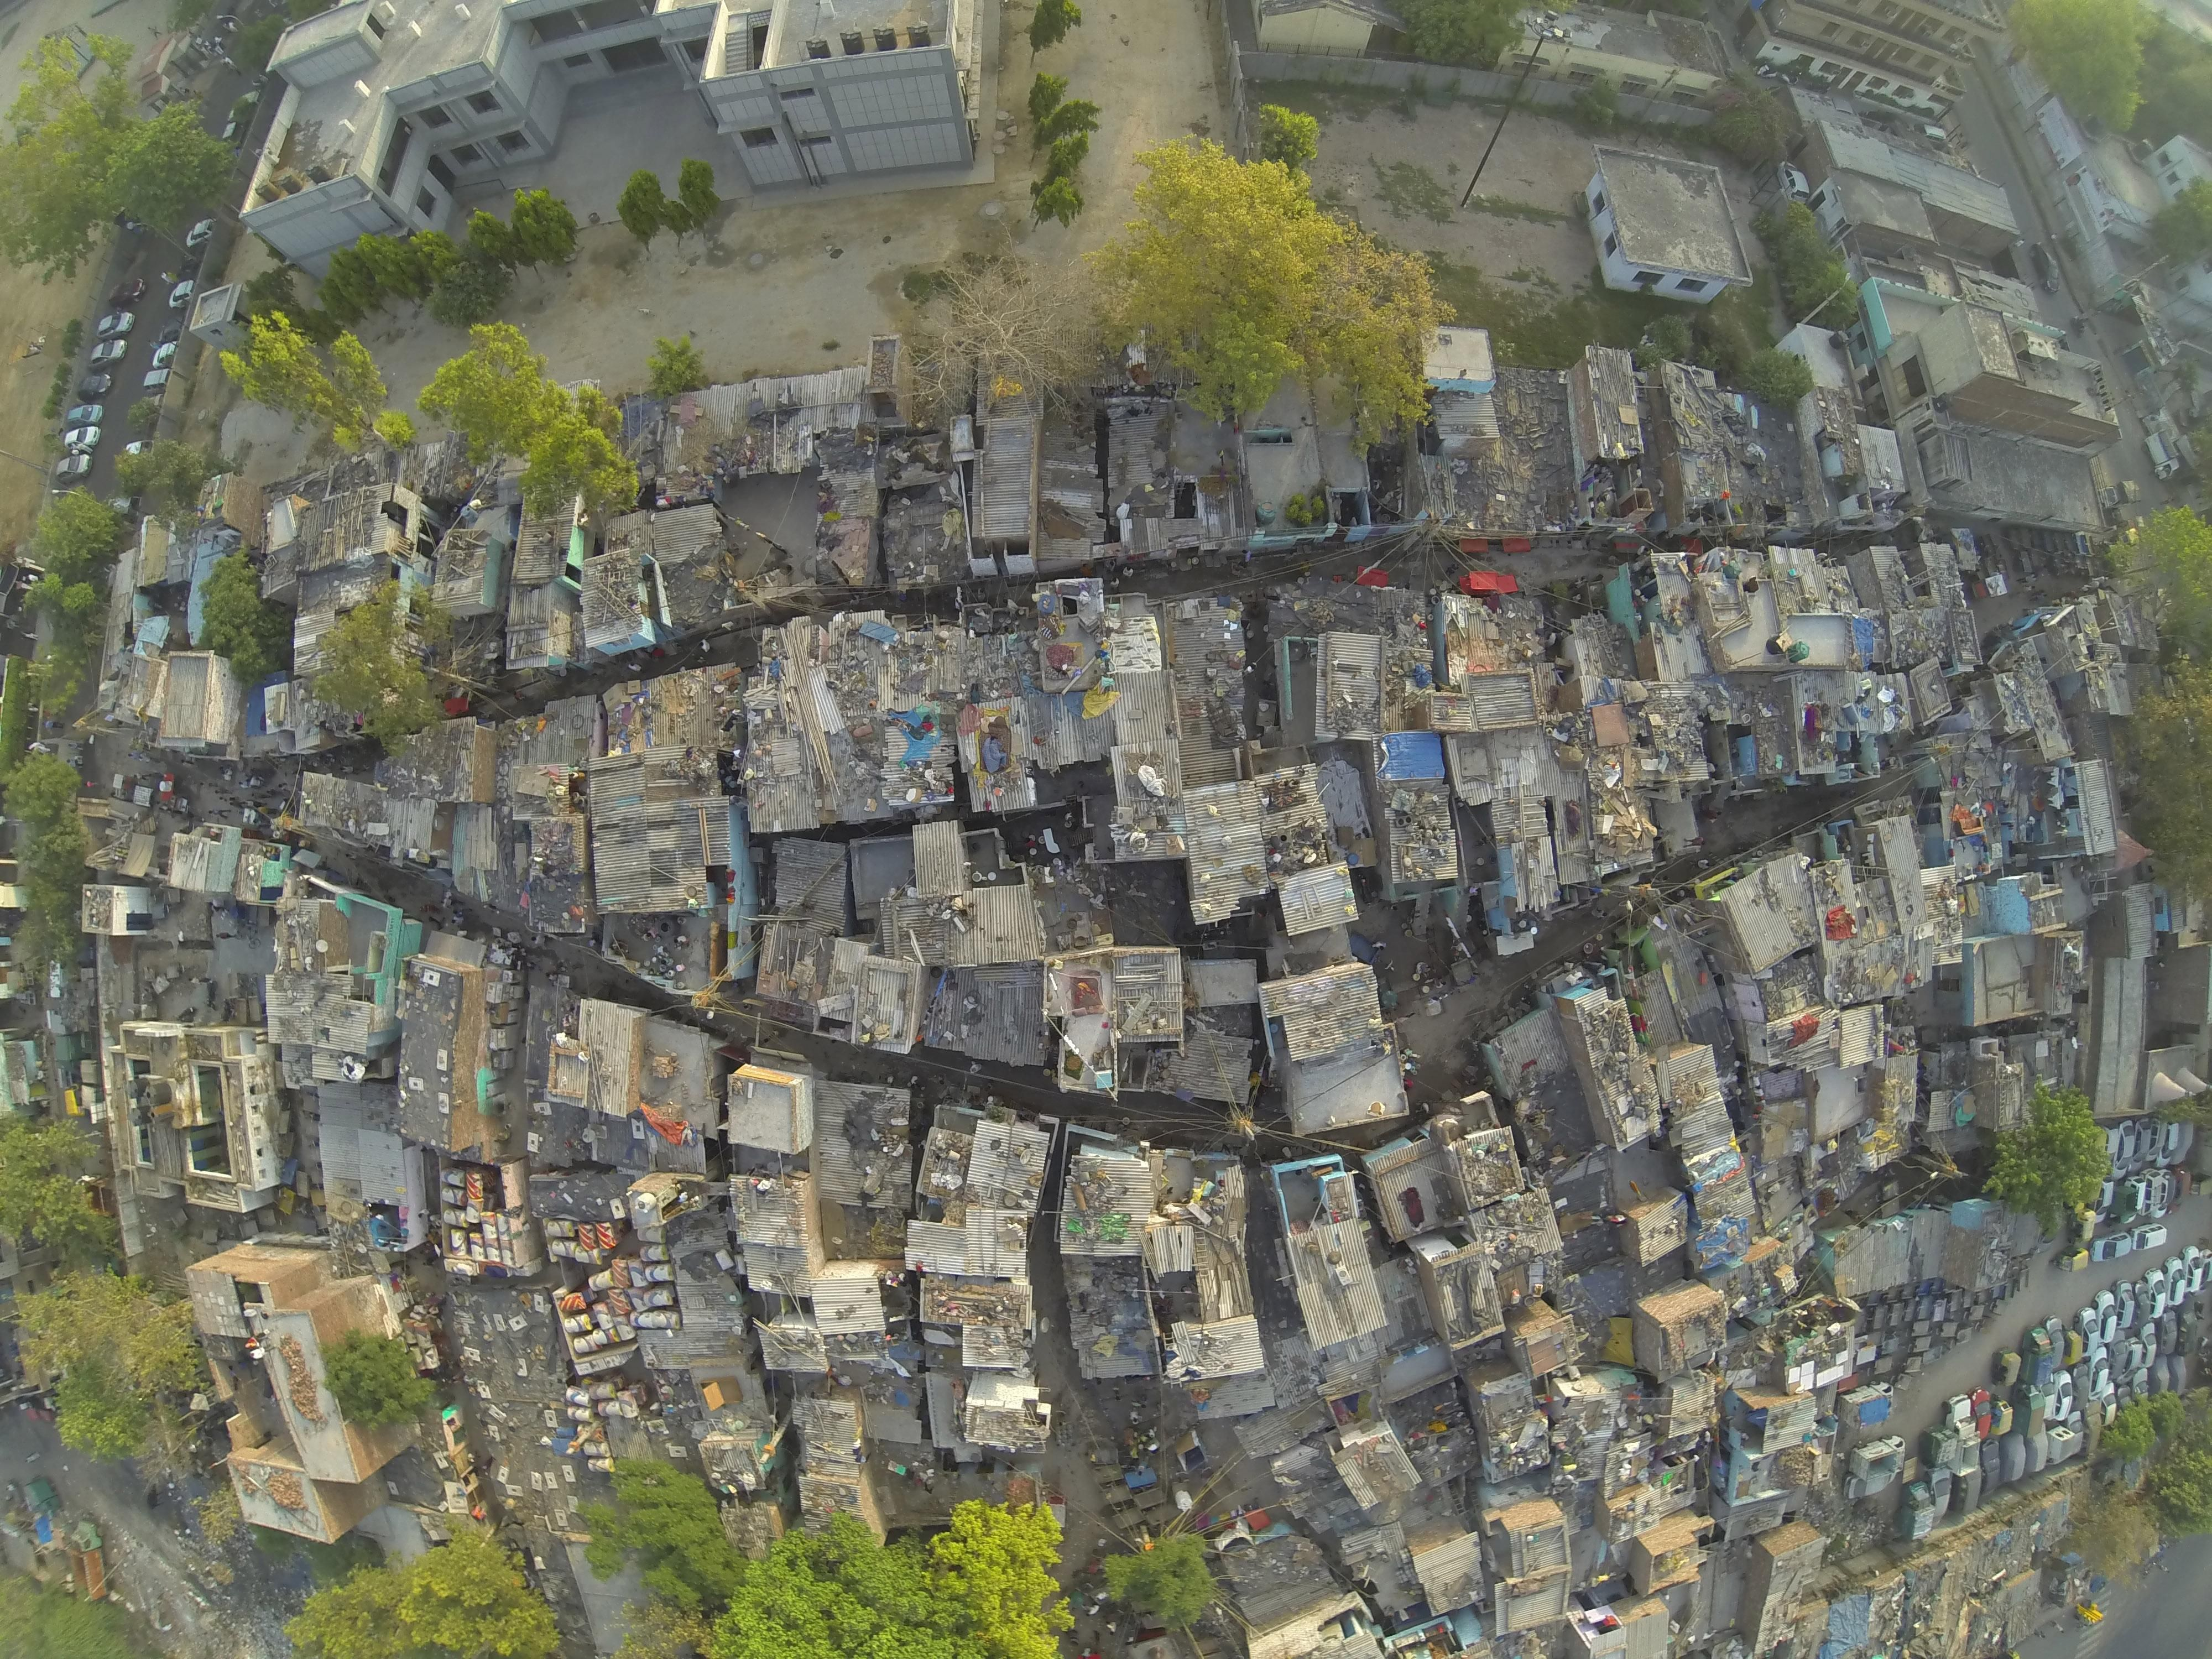 The Ingenious Delhi Slum That Scrapes By Without Toilets In Pictures